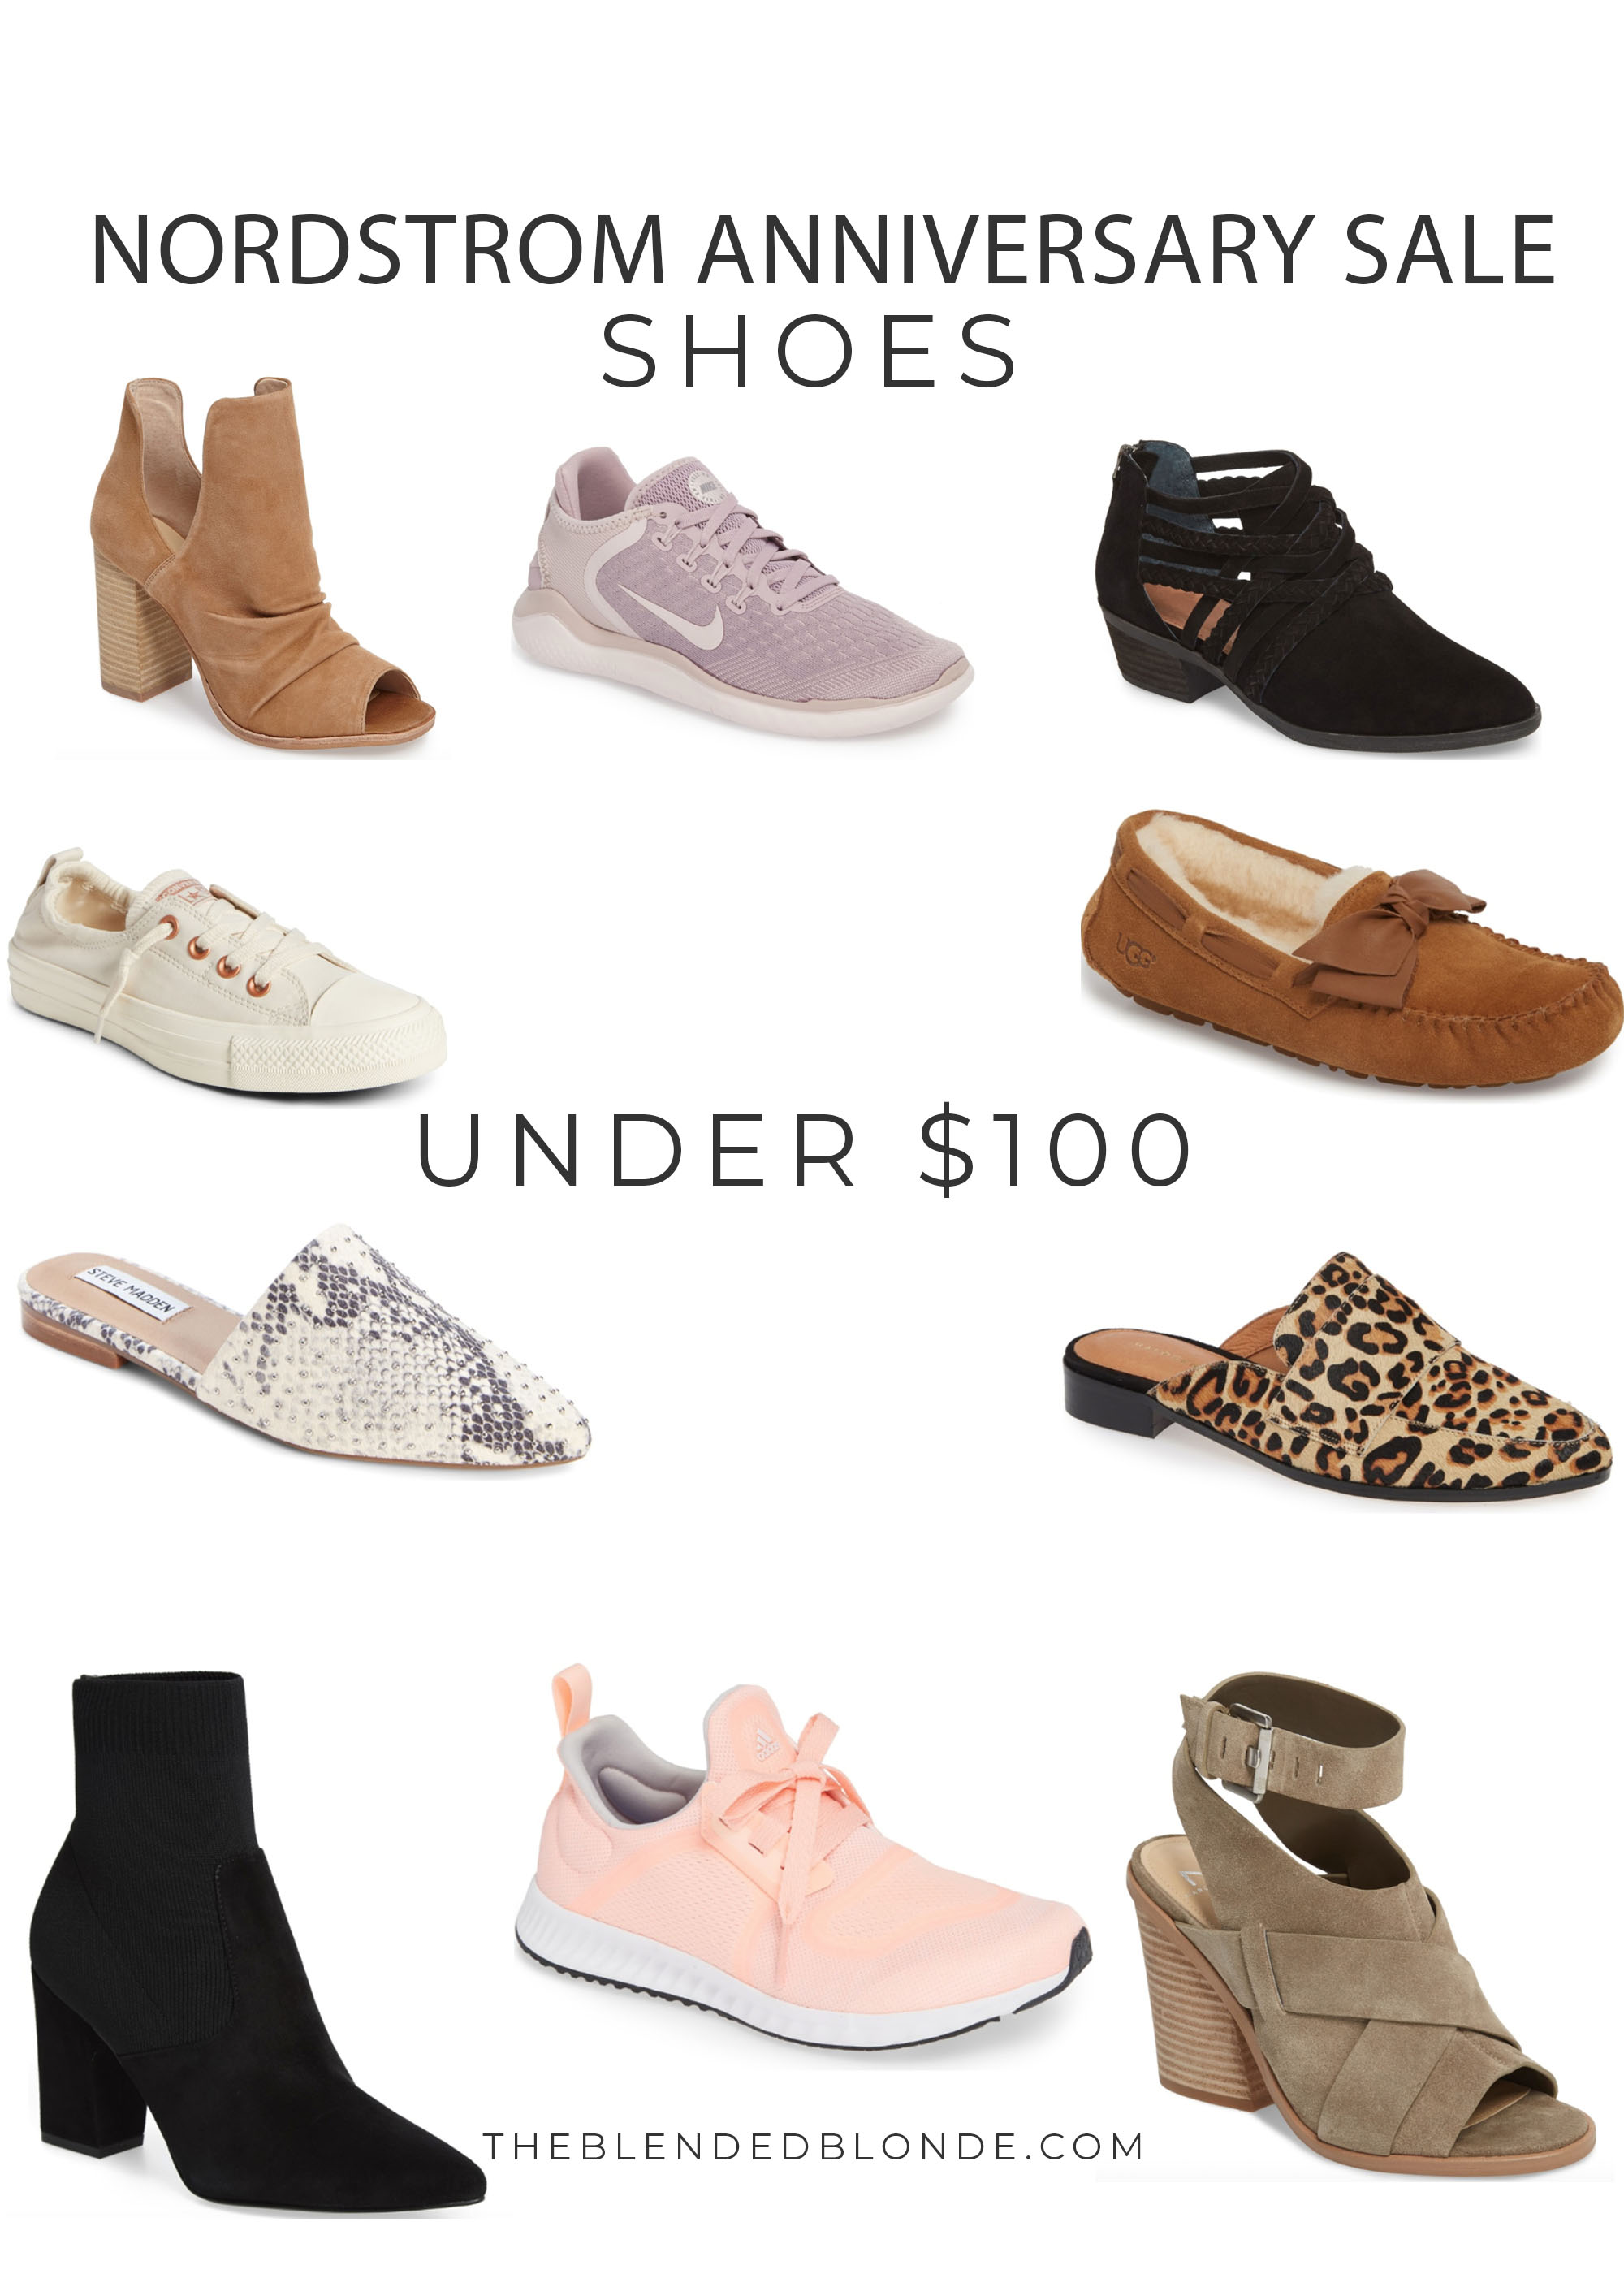 TOP SHOE PICKS FROM THE NORDSTROM ANNIVERSARY SALE 2018